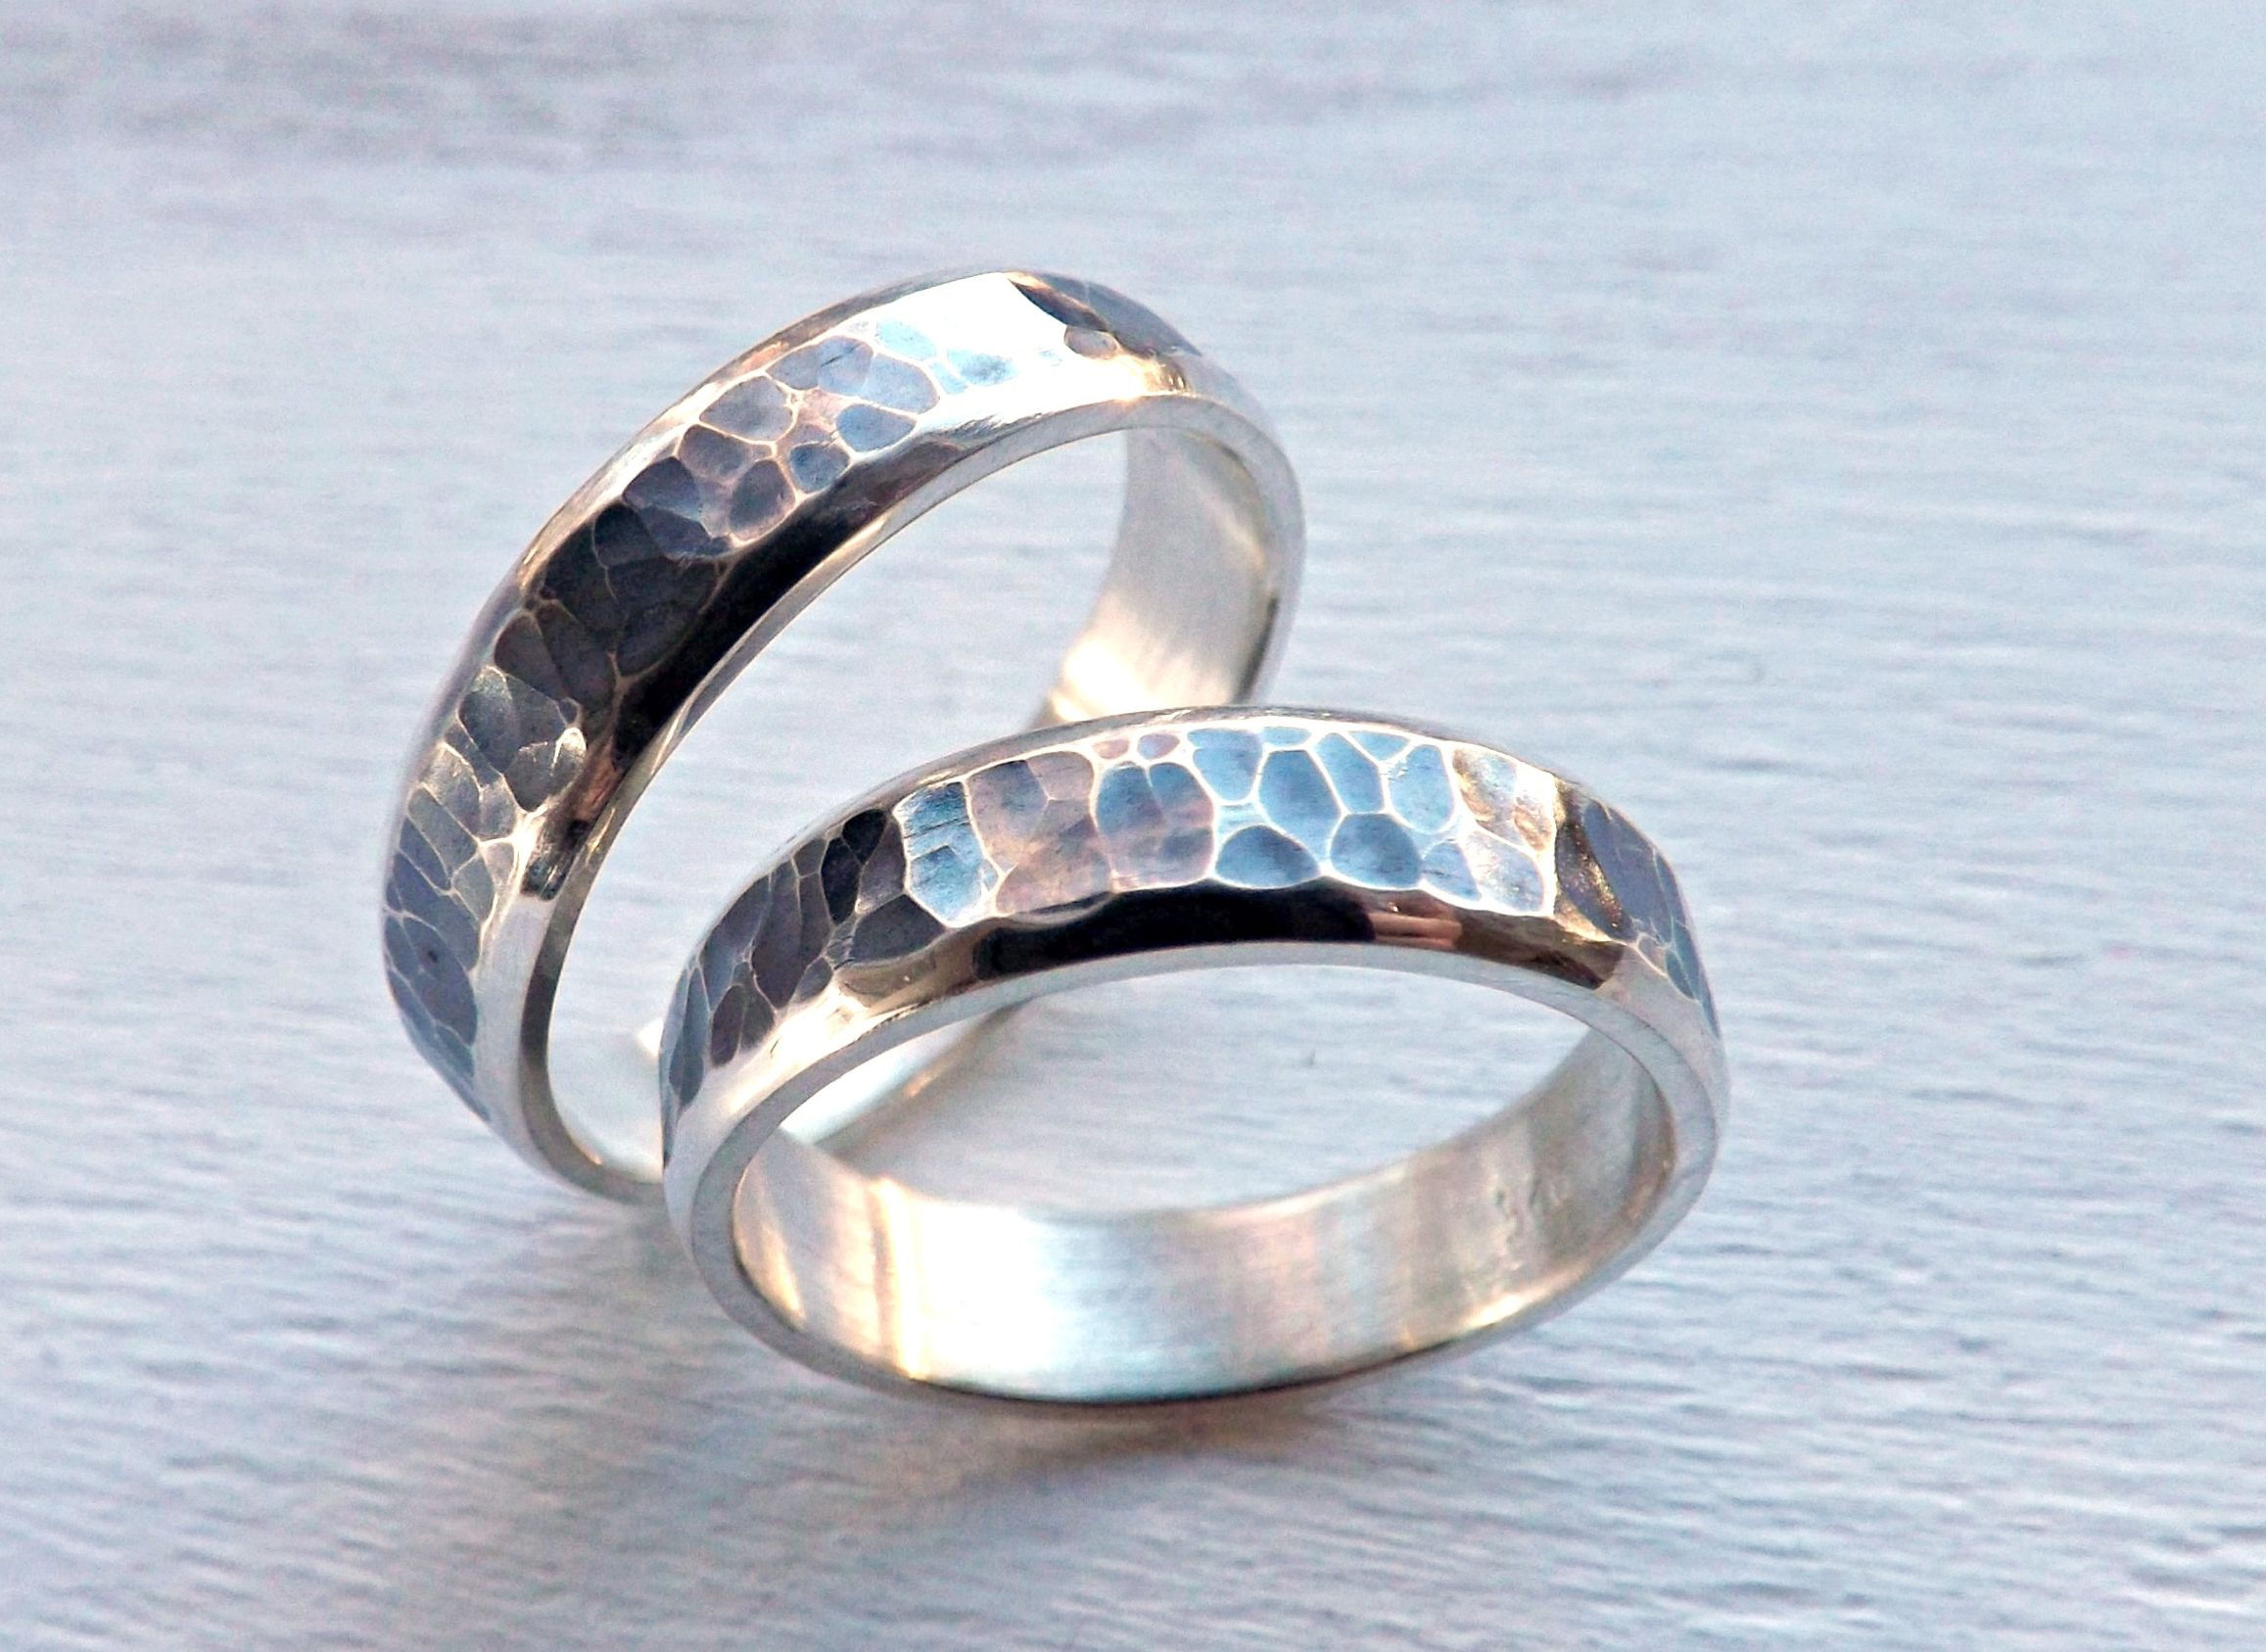 Custom Made Rustic Wedding Ring Set Silver Matching Promise Rings Partially Oxidized